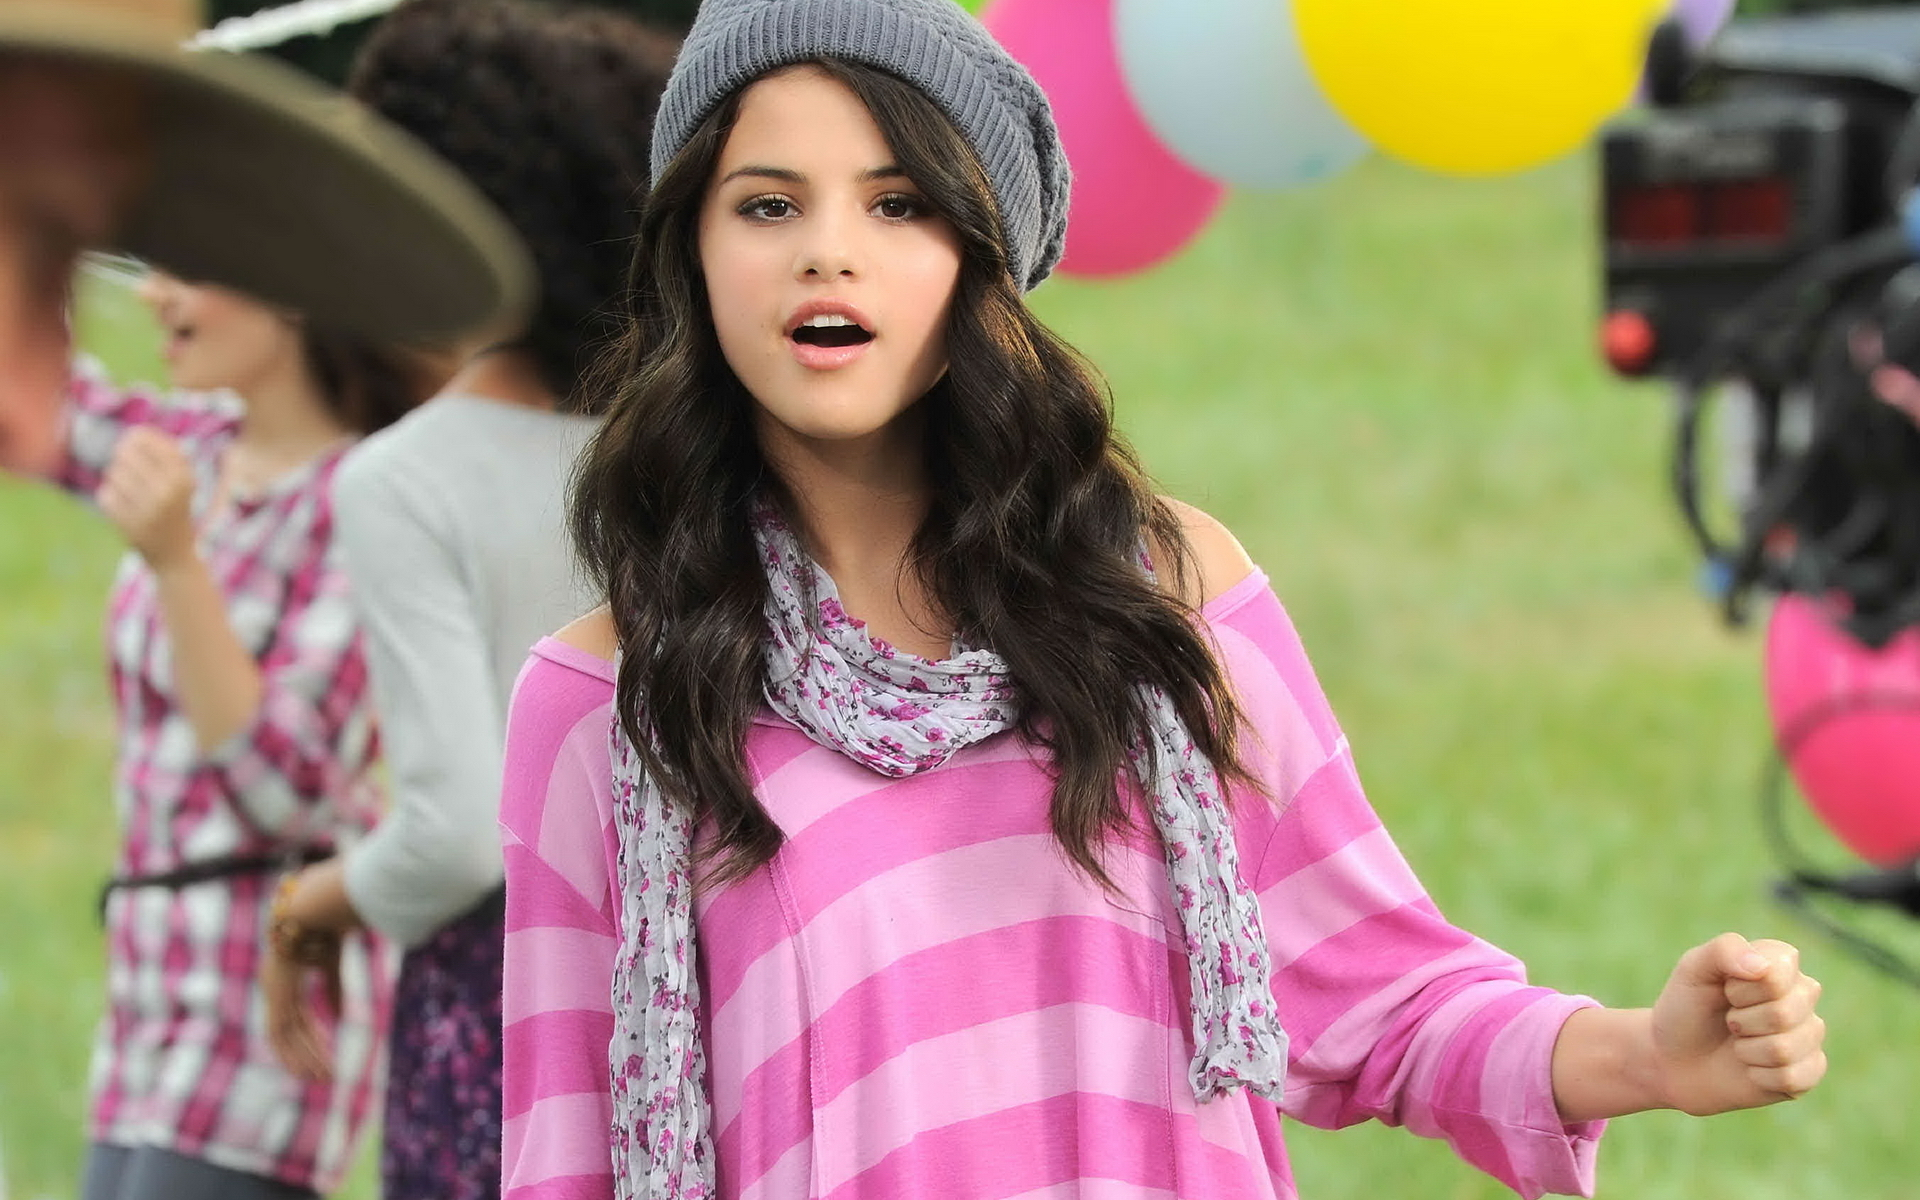 Selena Marie Gomez born July 22 1992 is an American singer actress and producer After appearing on the childrens television series Barney amp Friends she